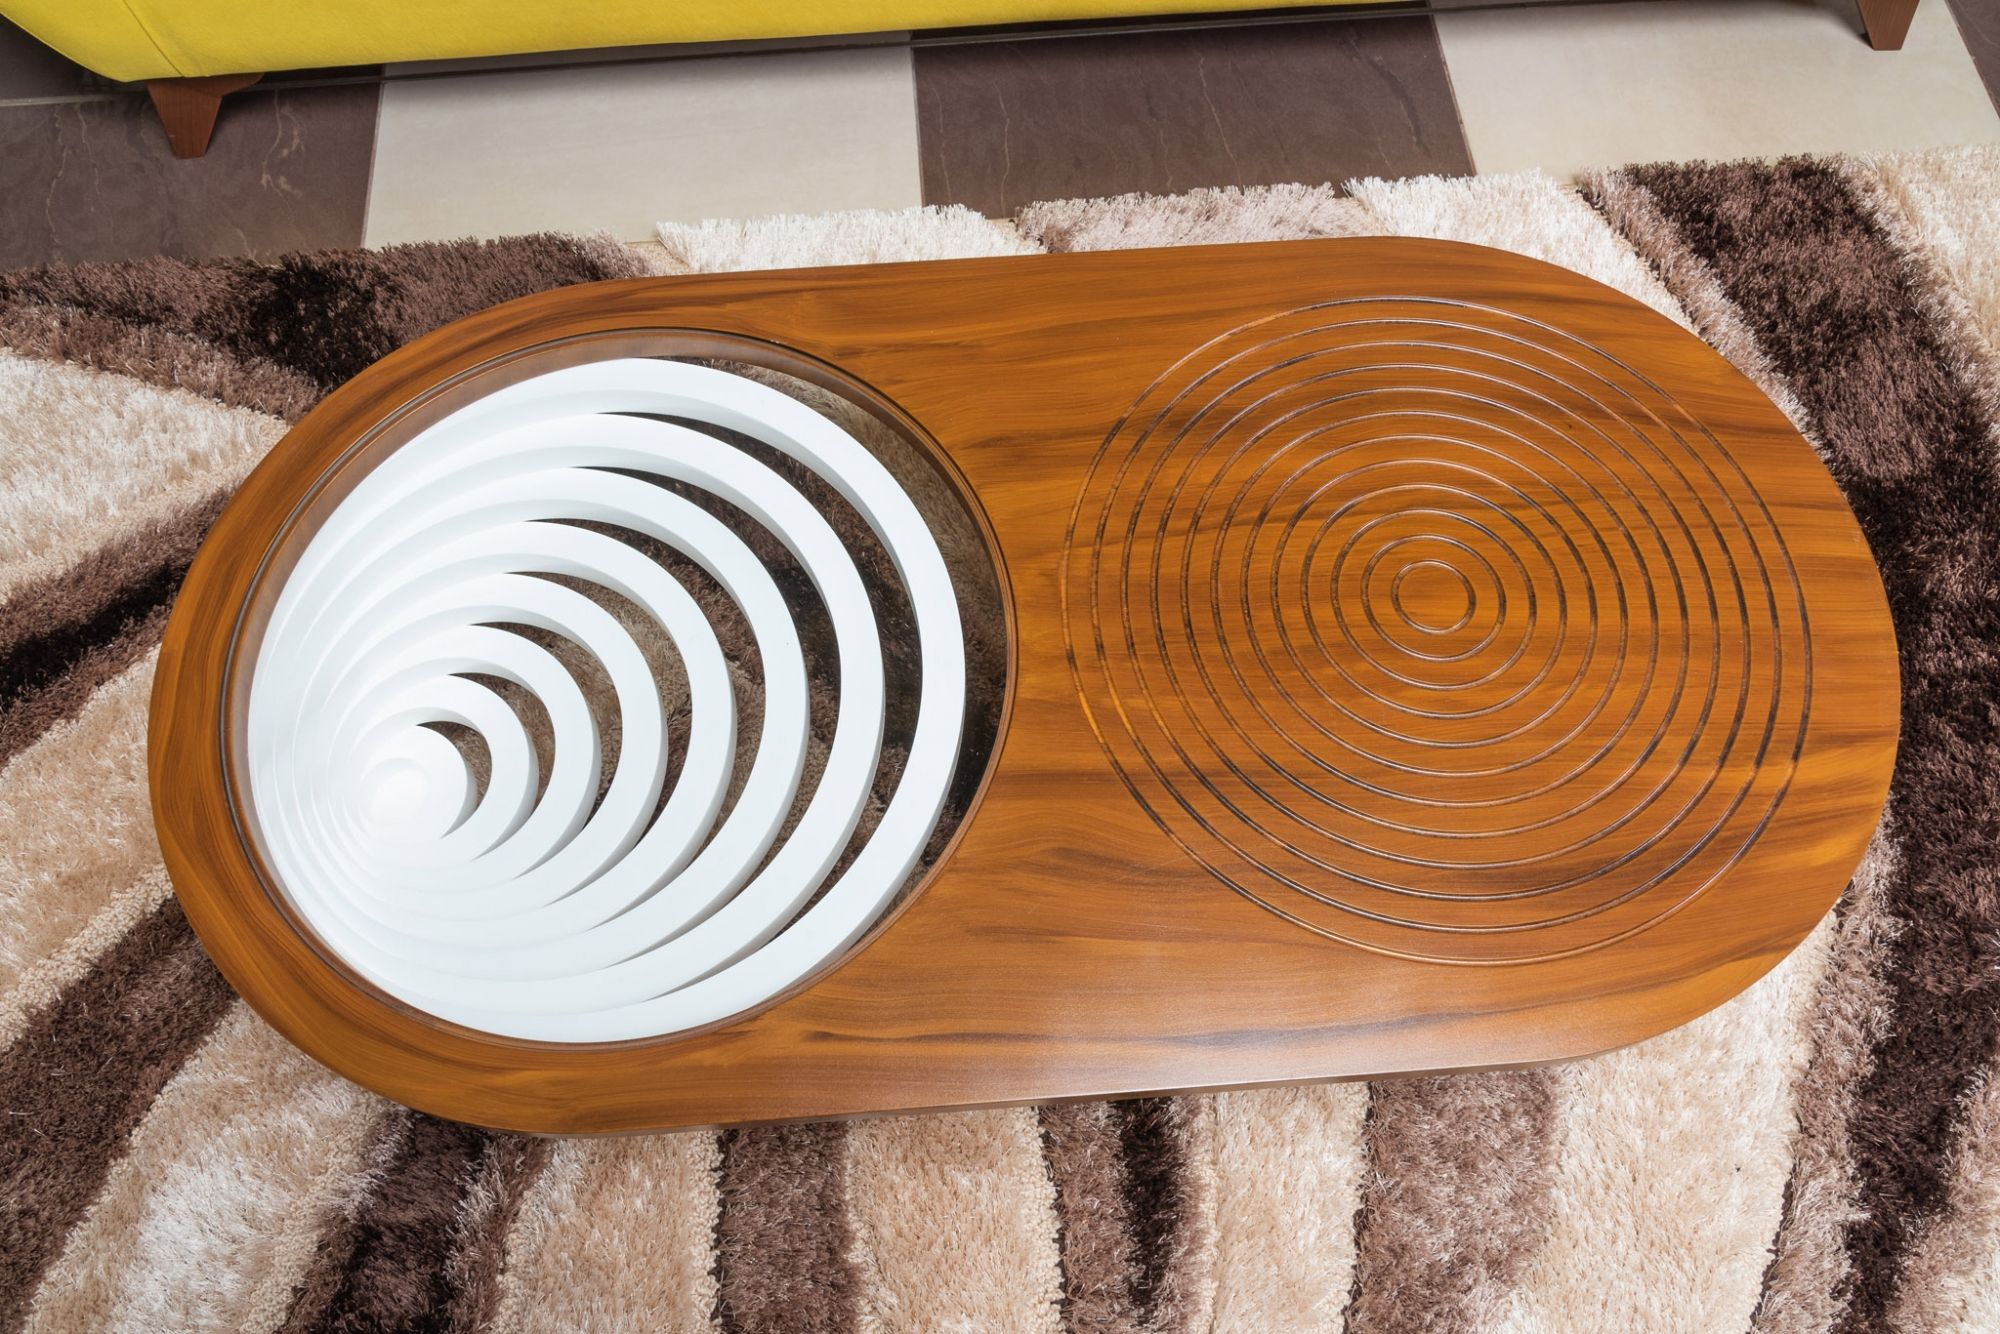 TOPIKANA 3 Coffee Table